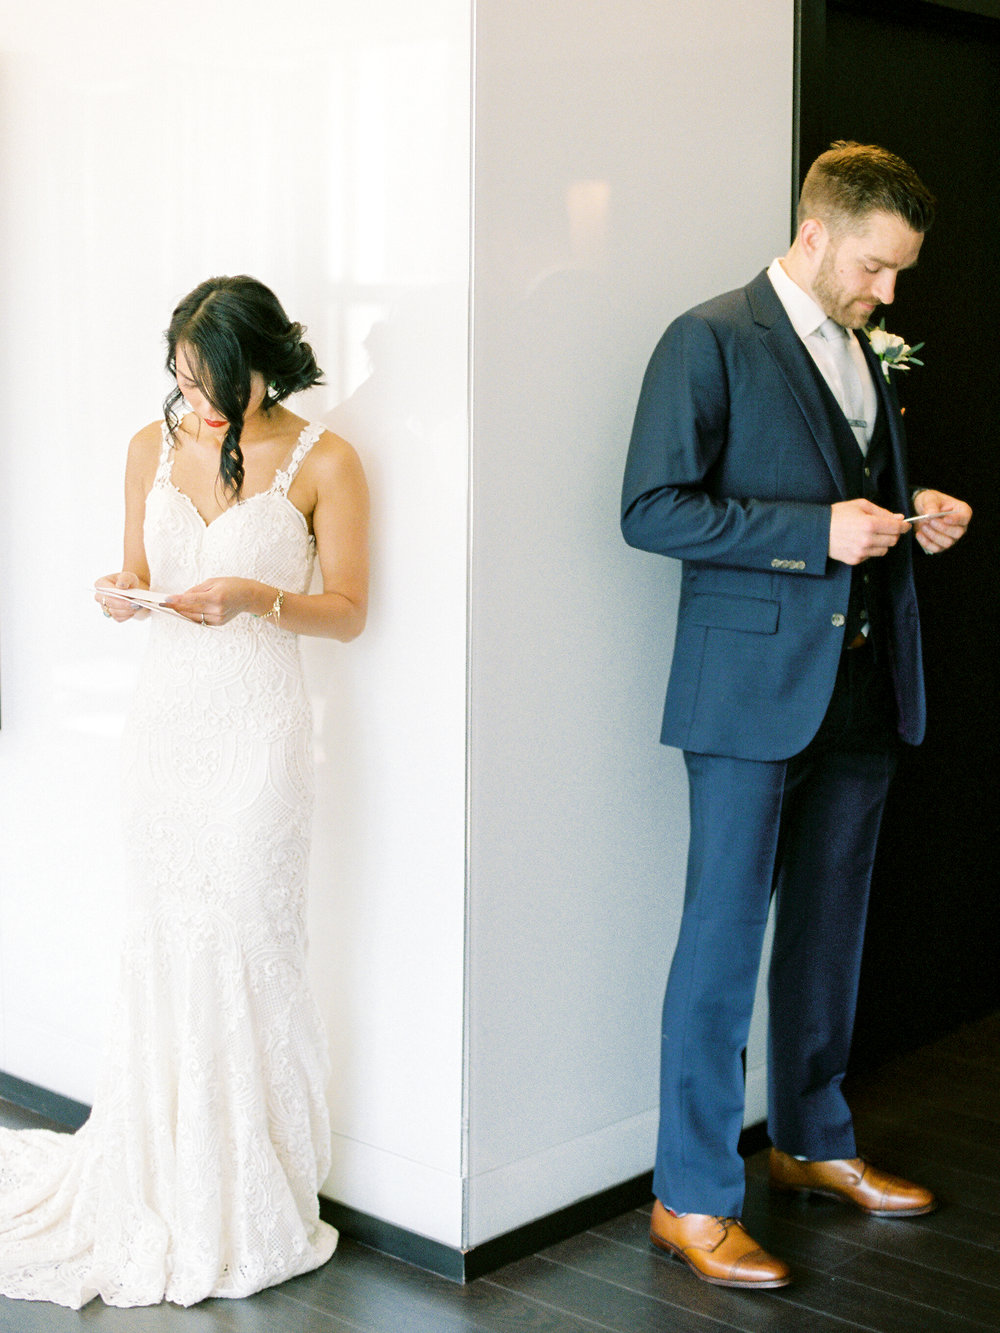 A bride and groom's first look at their Portland riverfront wedding